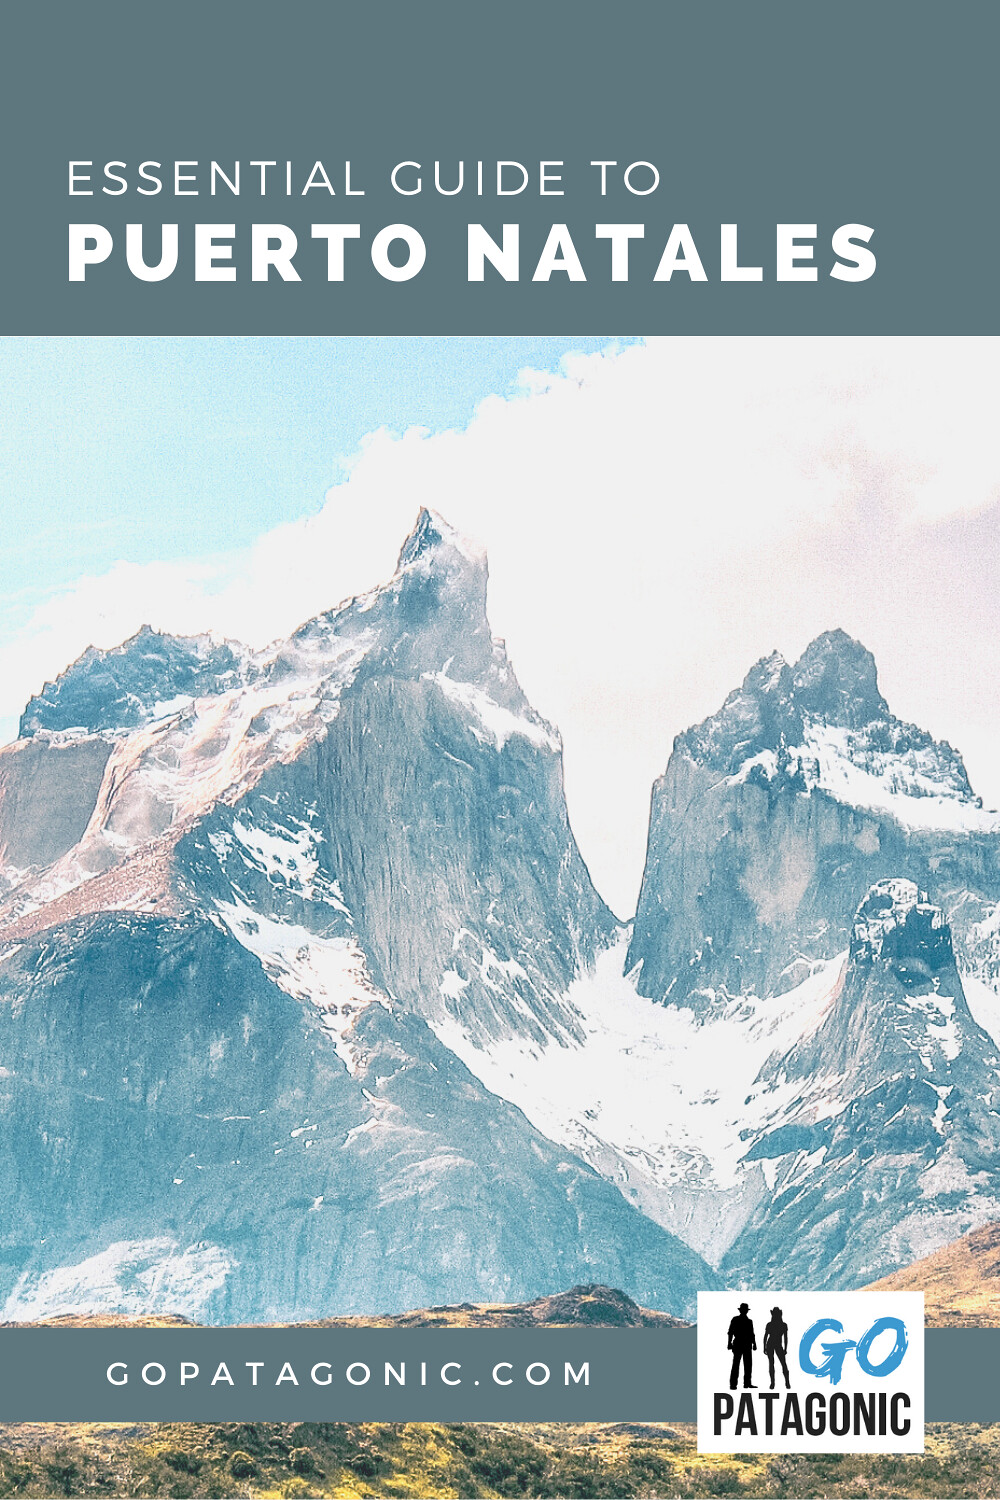 Travel to Puerto Natales, the essential guide